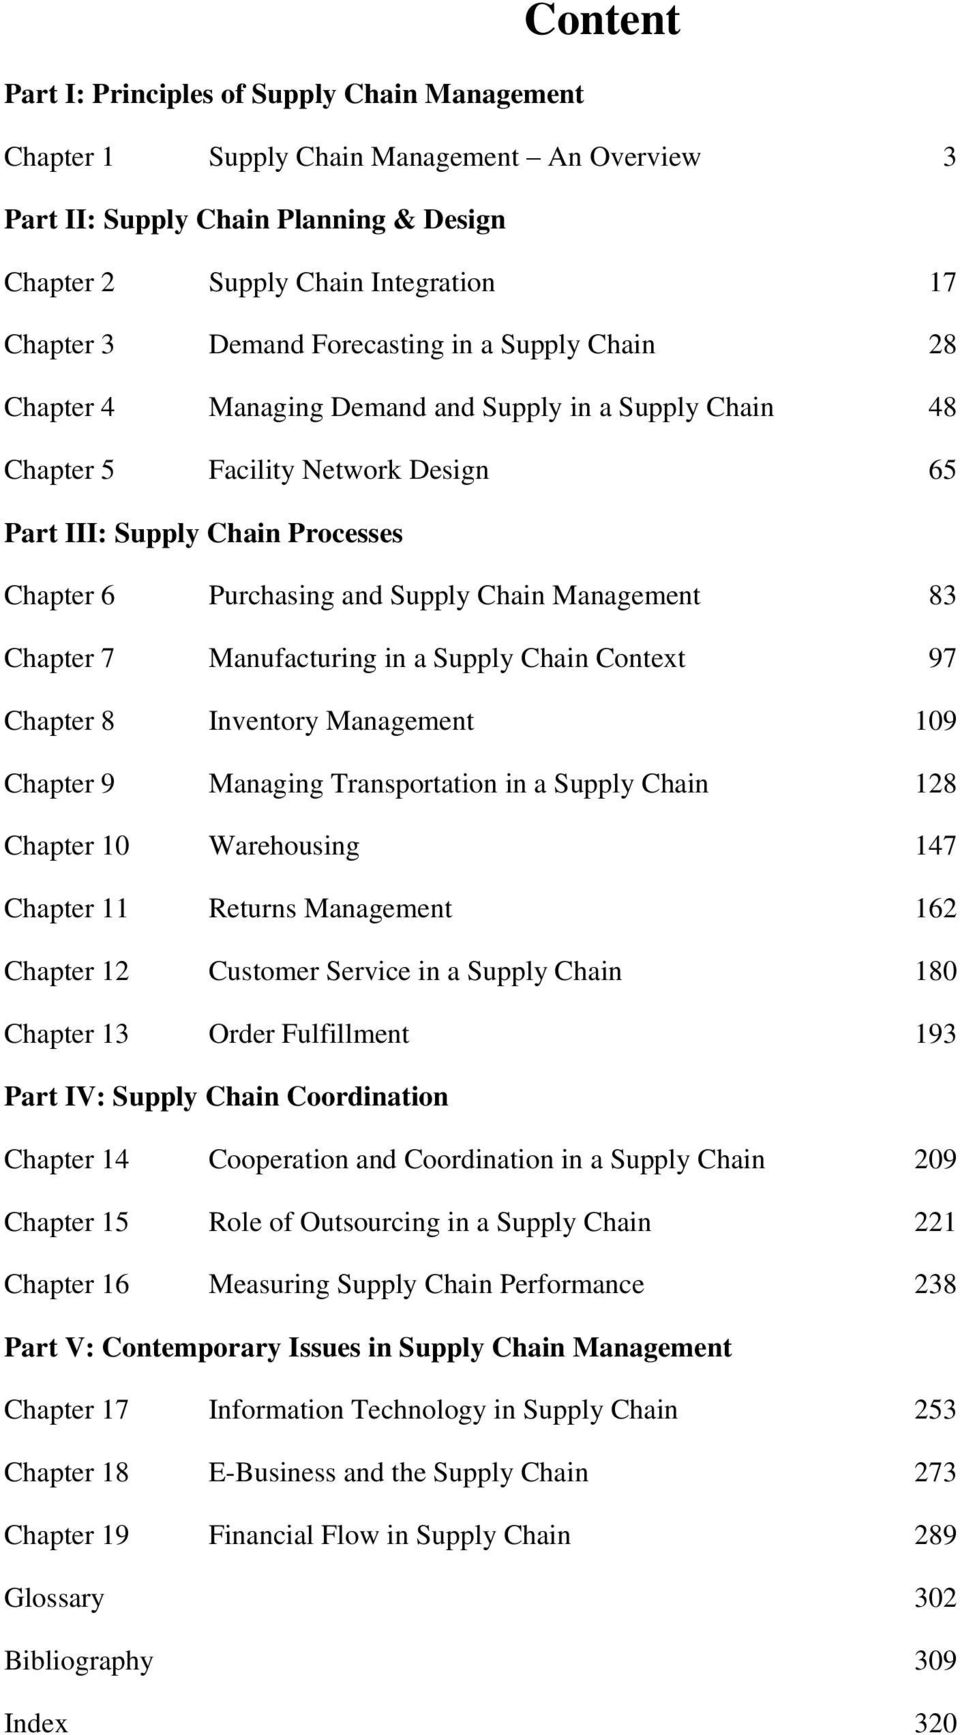 Management 83 Chapter 7 Manufacturing in a Supply Chain Context 97 Chapter 8 Inventory Management 109 Chapter 9 Managing Transportation in a Supply Chain 128 Chapter 10 Warehousing 147 Chapter 11